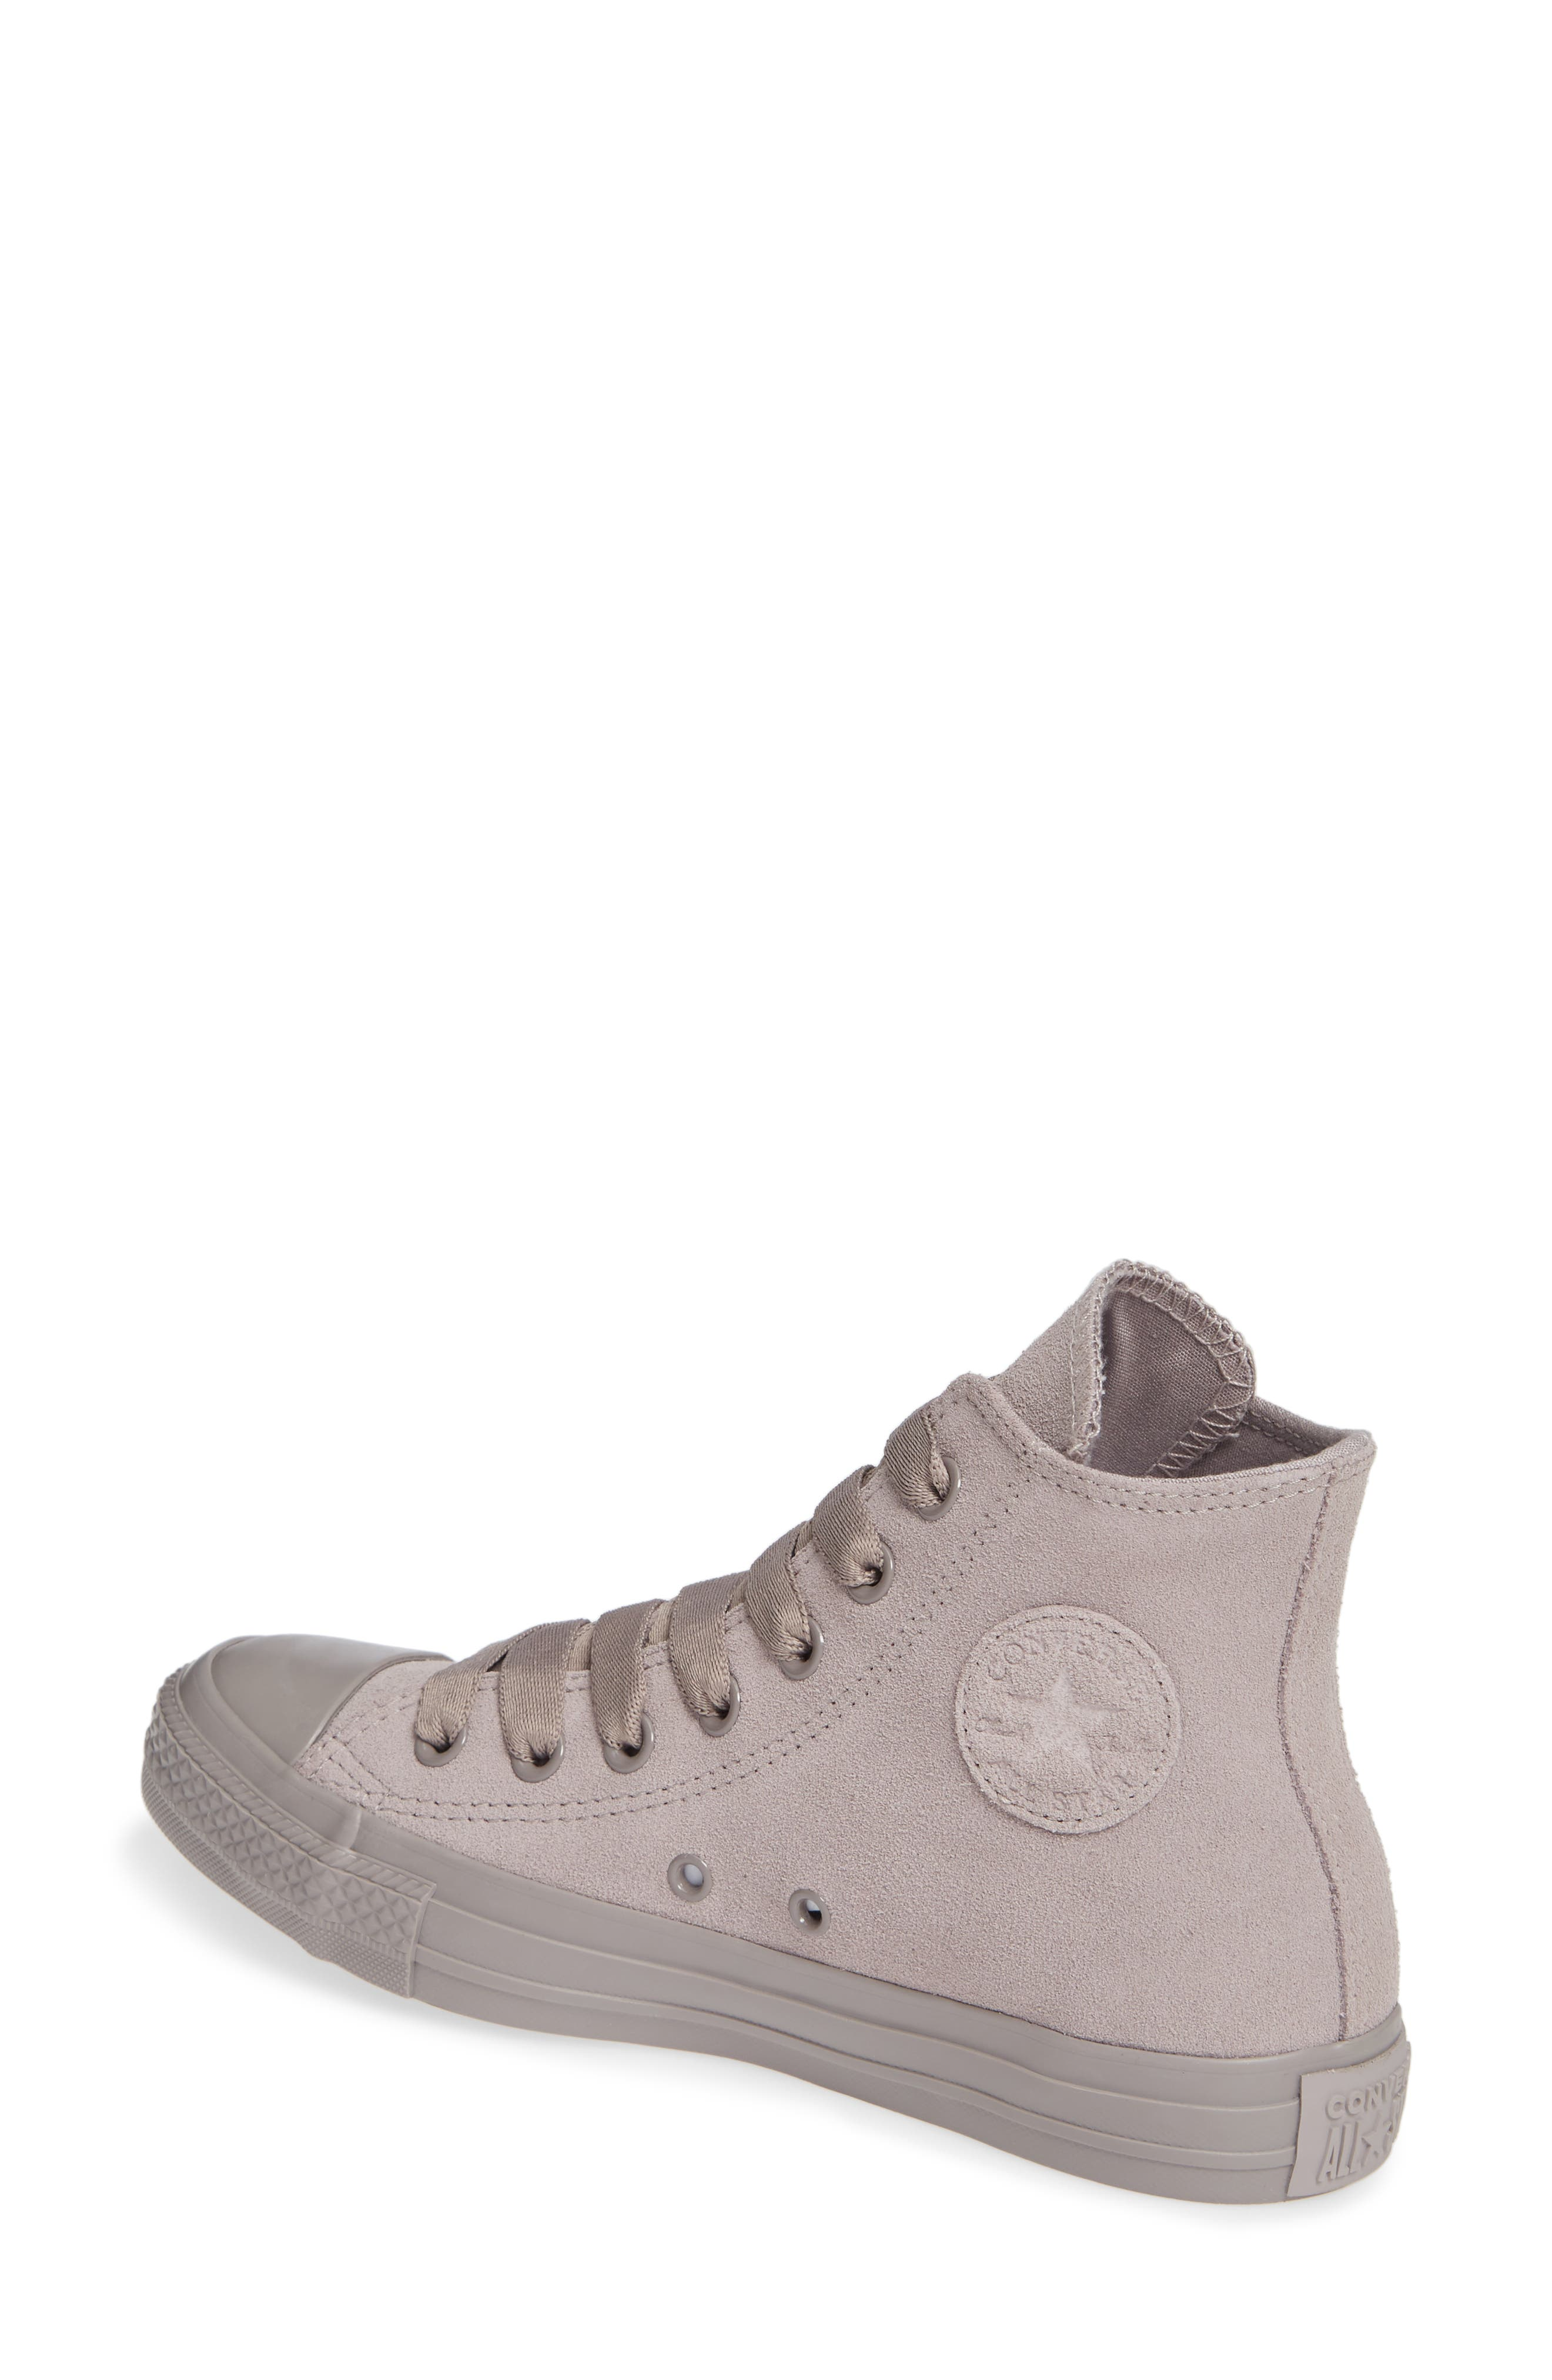 Chuck Taylor<sup>®</sup> All Star<sup>®</sup> Hi Sneaker,                             Alternate thumbnail 2, color,                             MERCURY GREY SUEDE